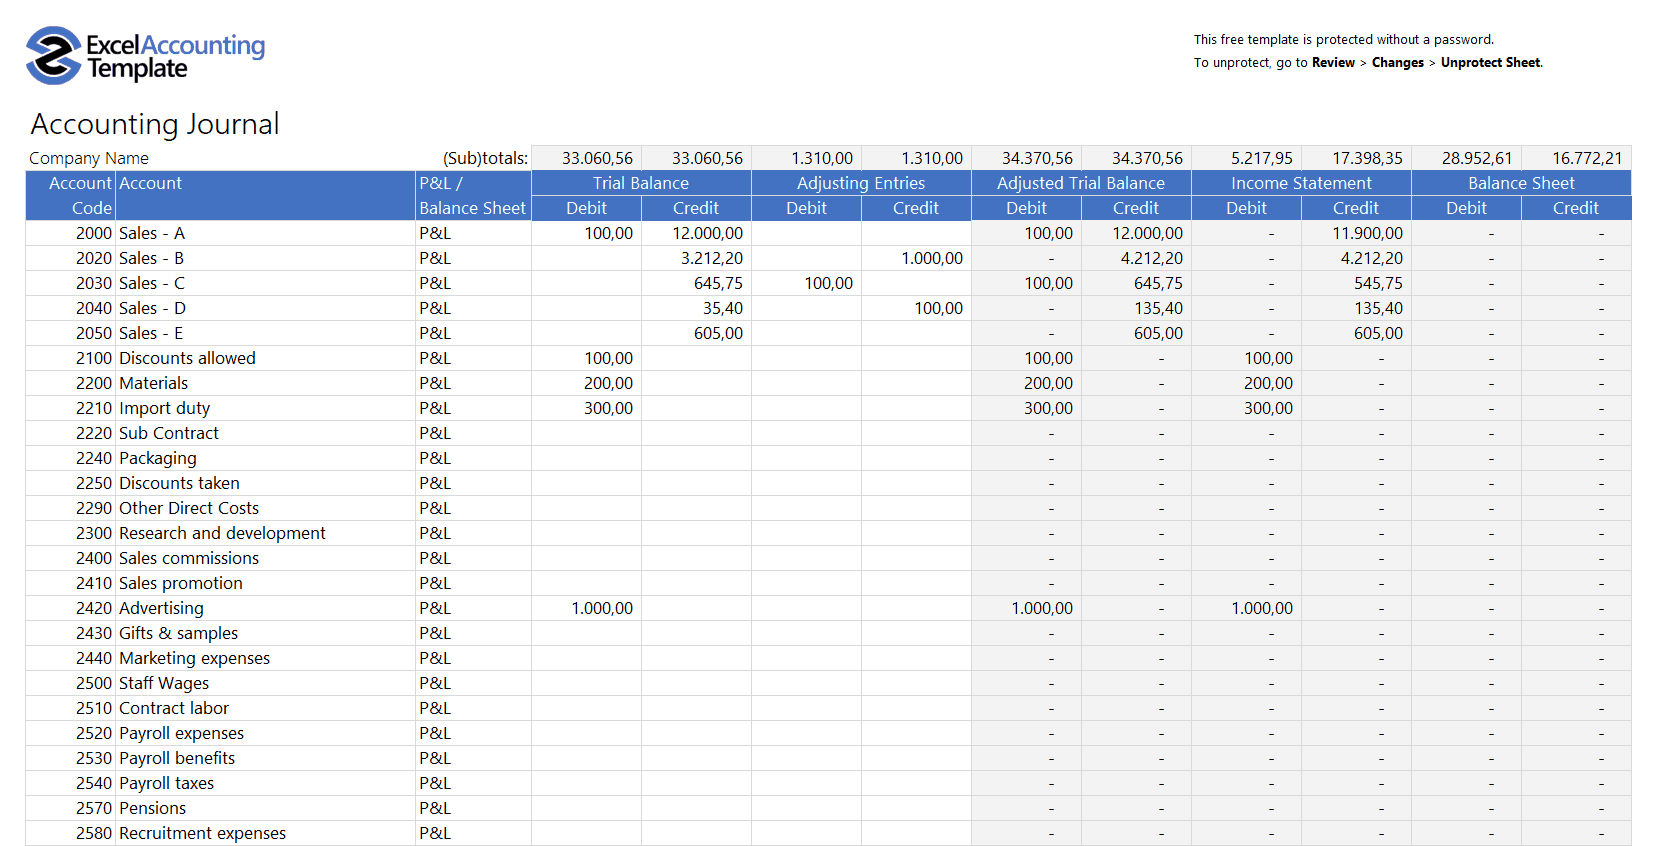 Excel Balance Sheet Template Free Download from excelaccountingtemplate.com